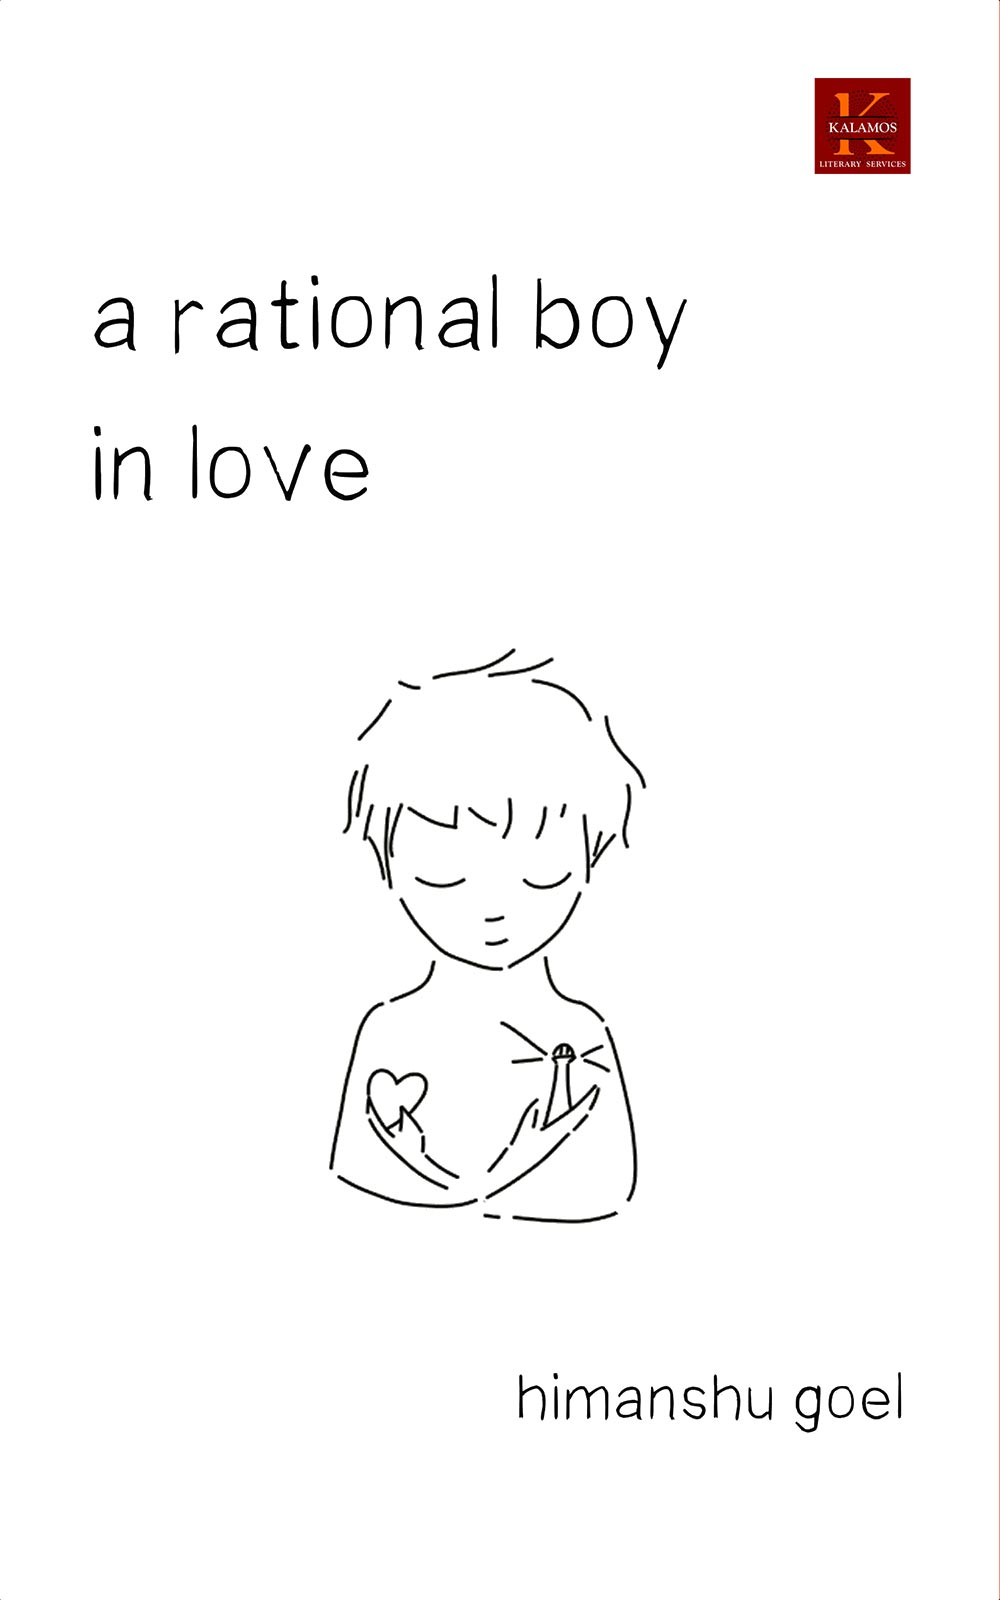 A Rational Boy in Love by Himanshu Goel